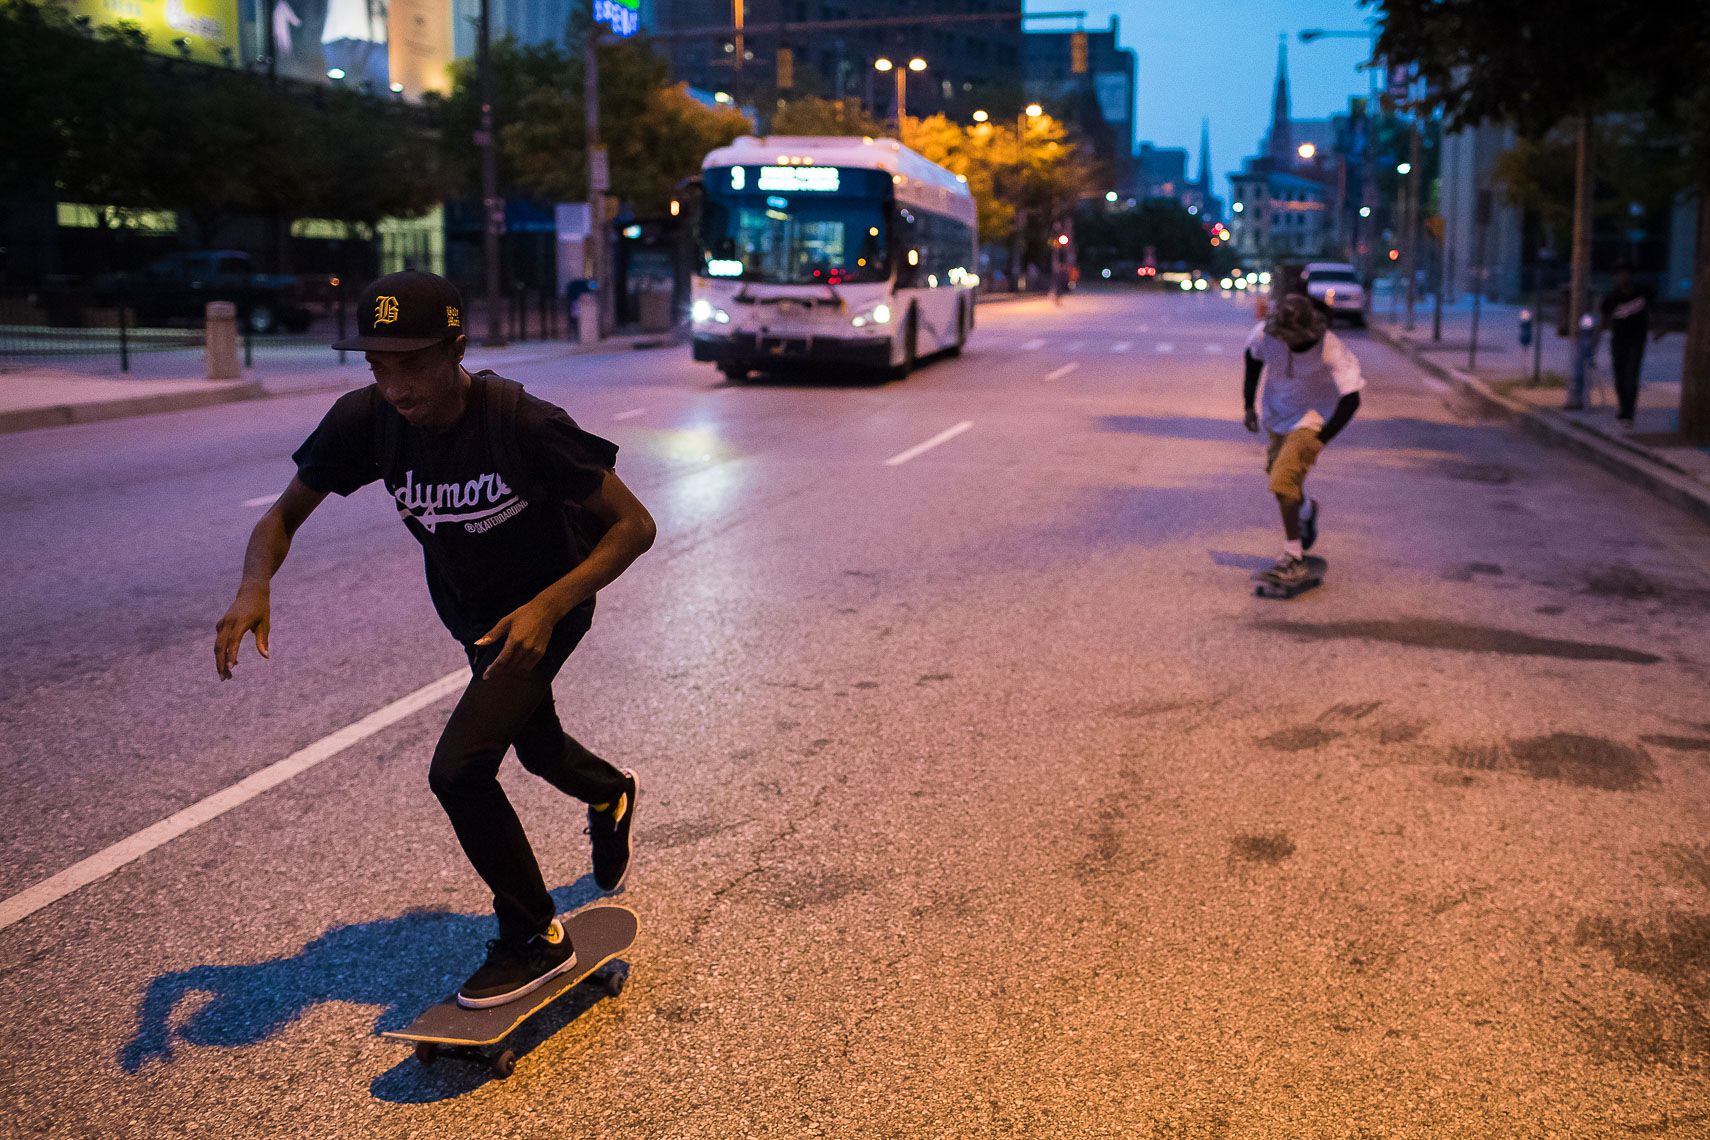 milksquad11_Milksquad was a group of African American Baltimore youth skateboarders sponsored by Milkcrate Athletics NYC who skateboard in Baltimore city youth culture documentary photography project